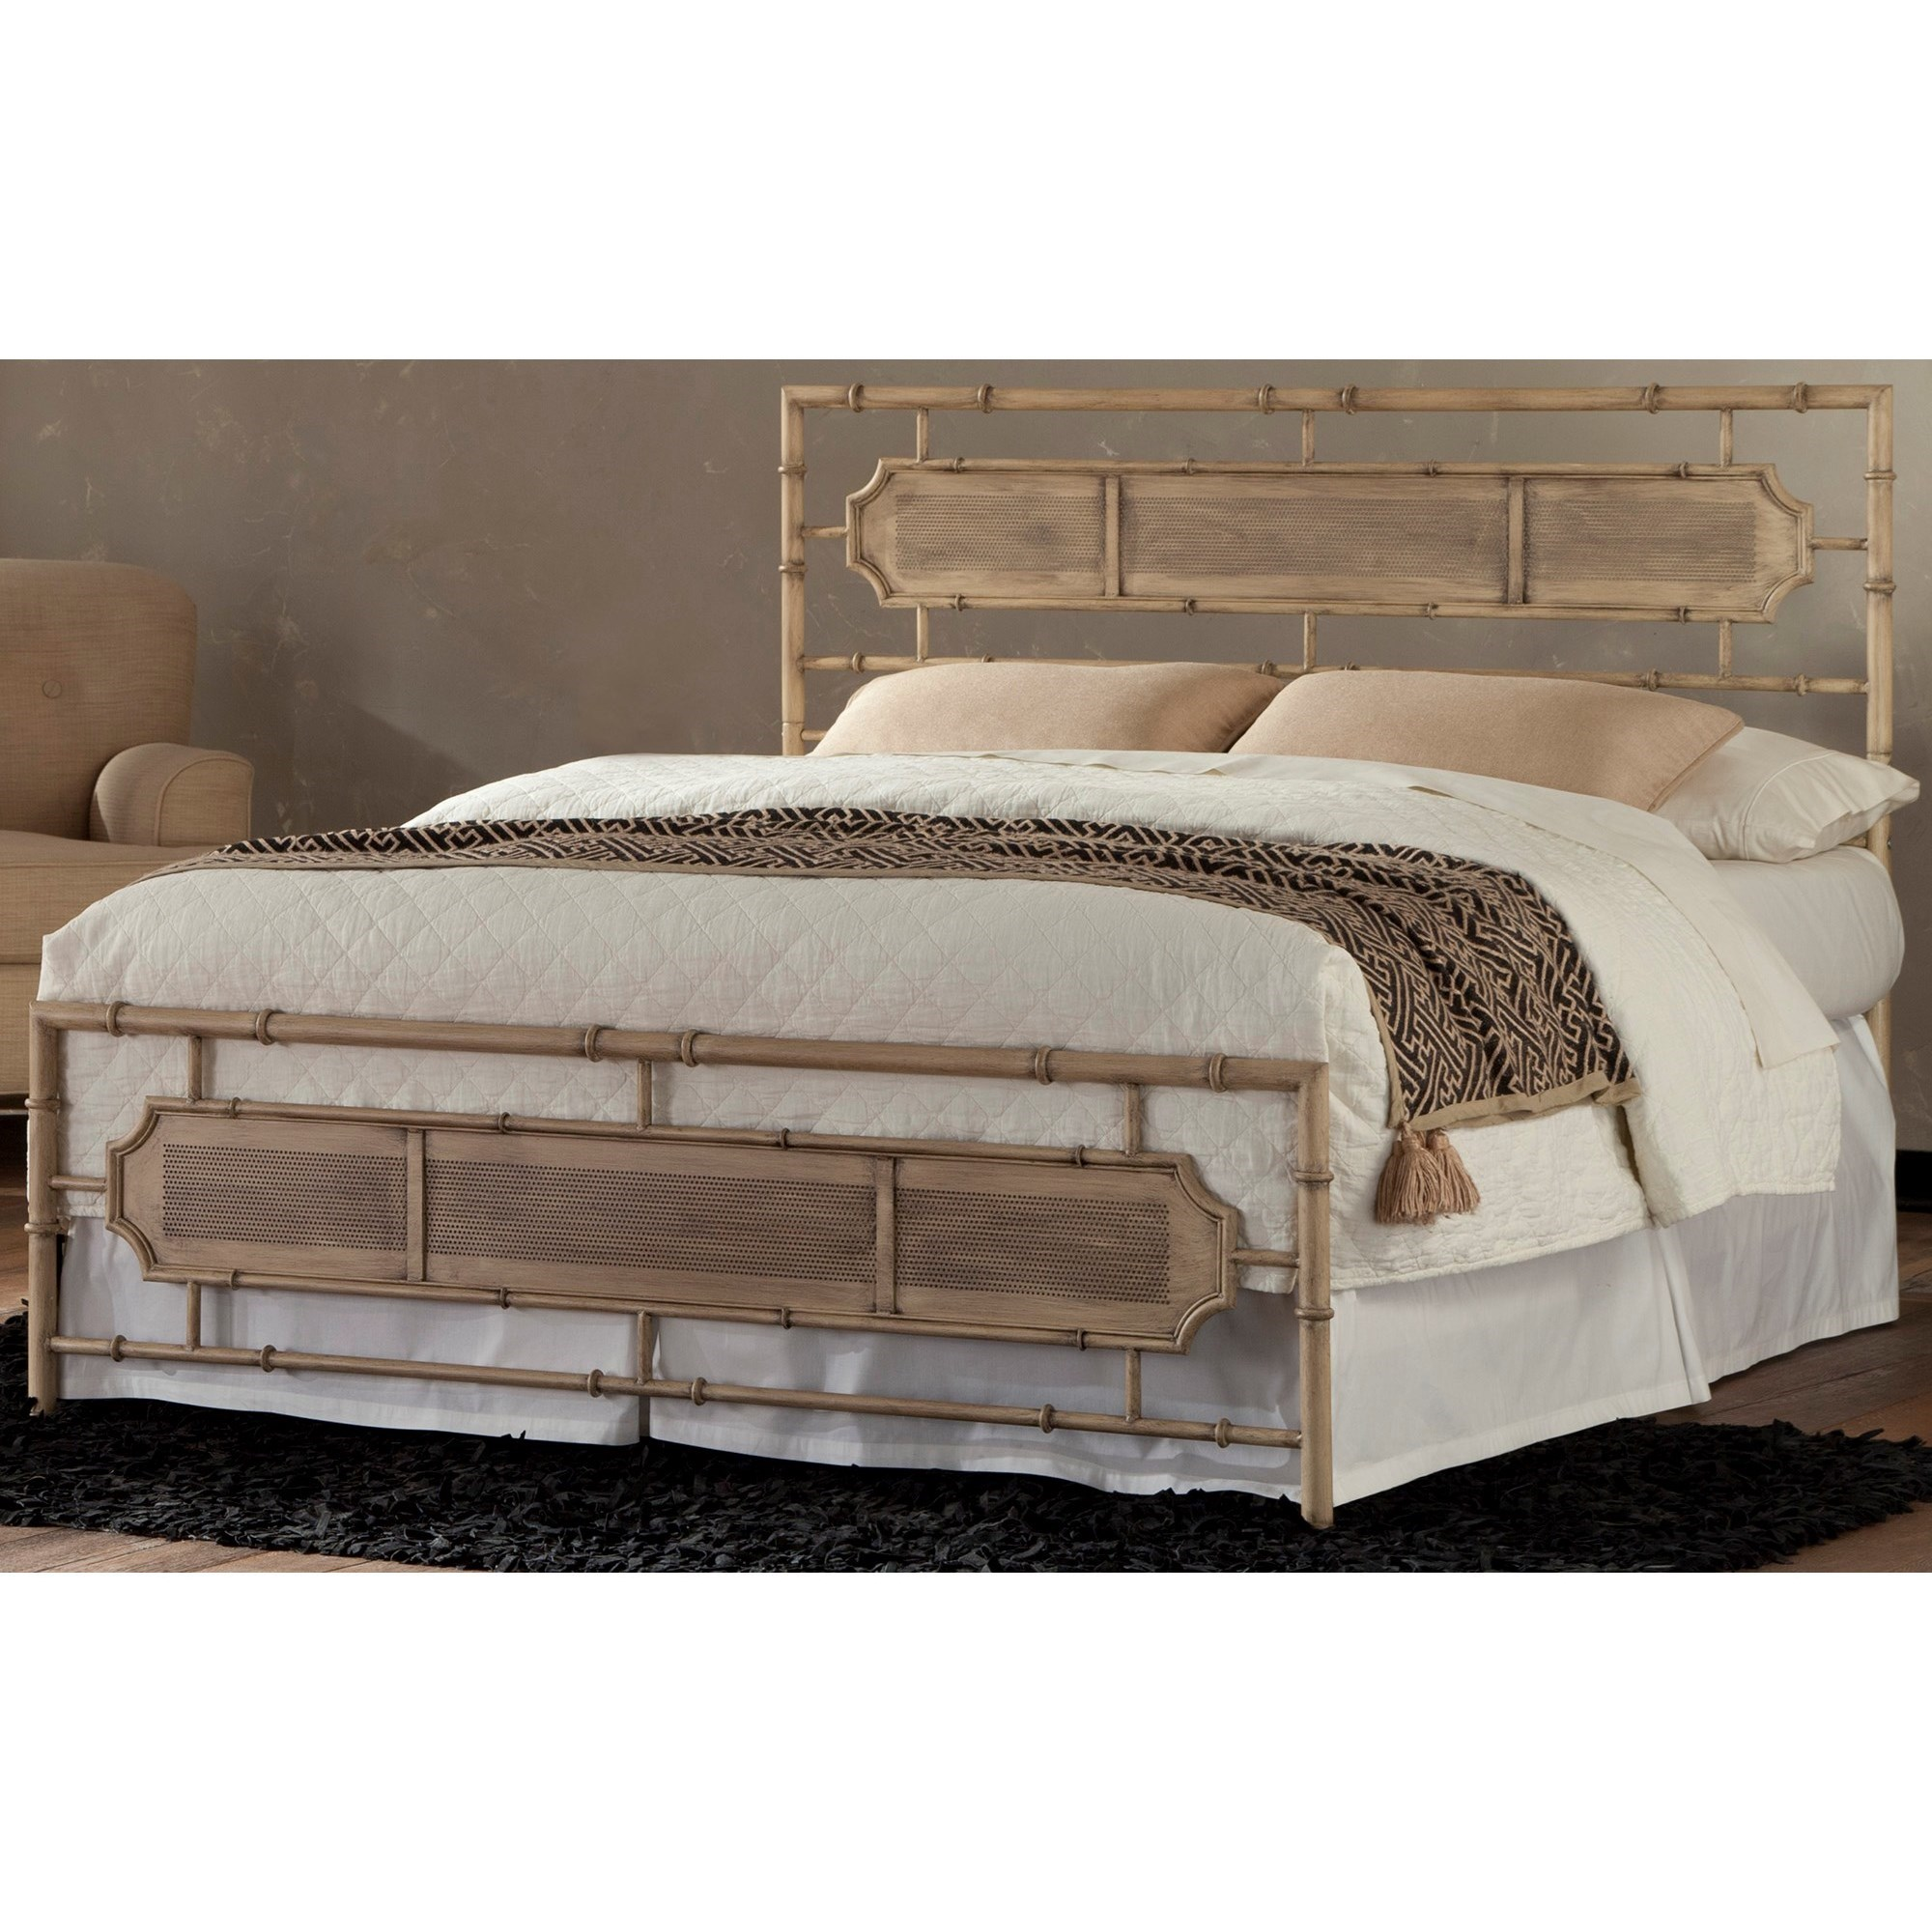 Coastal Queen Metal Snap Bed With Desert Sand Finish   Snap Beds By Fashion  Bed Group   Wilcox Furniture   Headboard U0026 Footboard